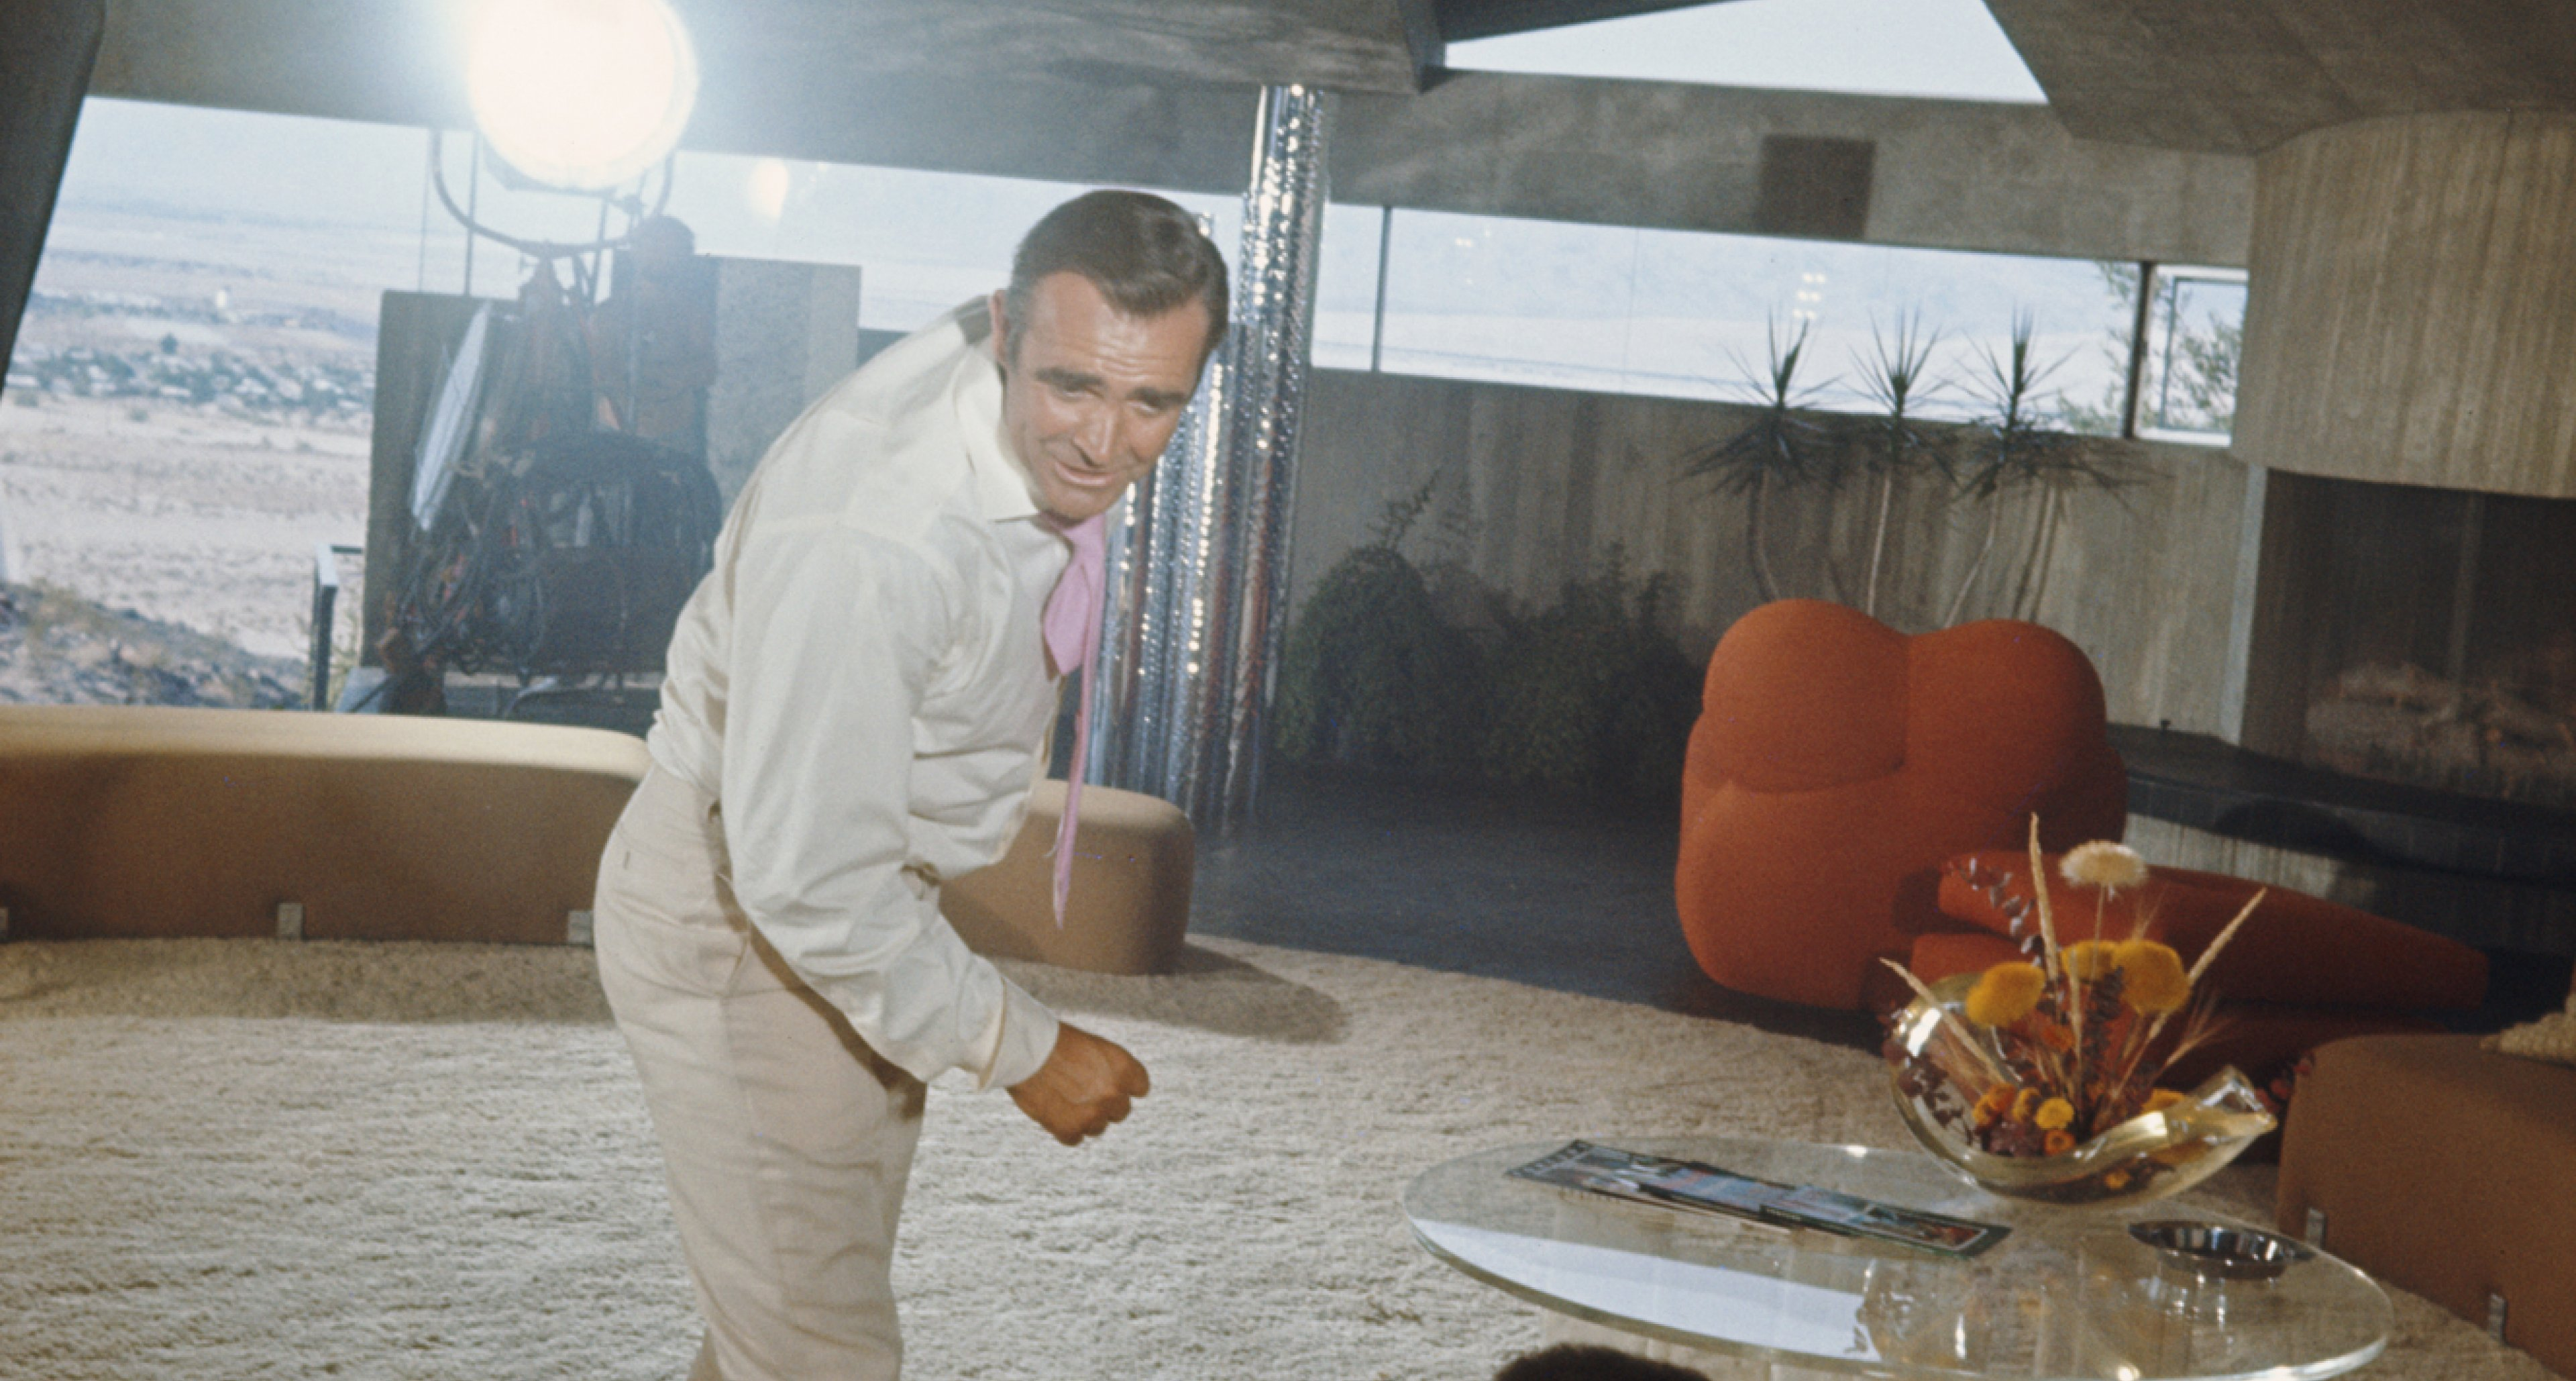 Shooting 'Diamonds are Forever' with Sean Connery at Elrod House by John Lautner in 1971.